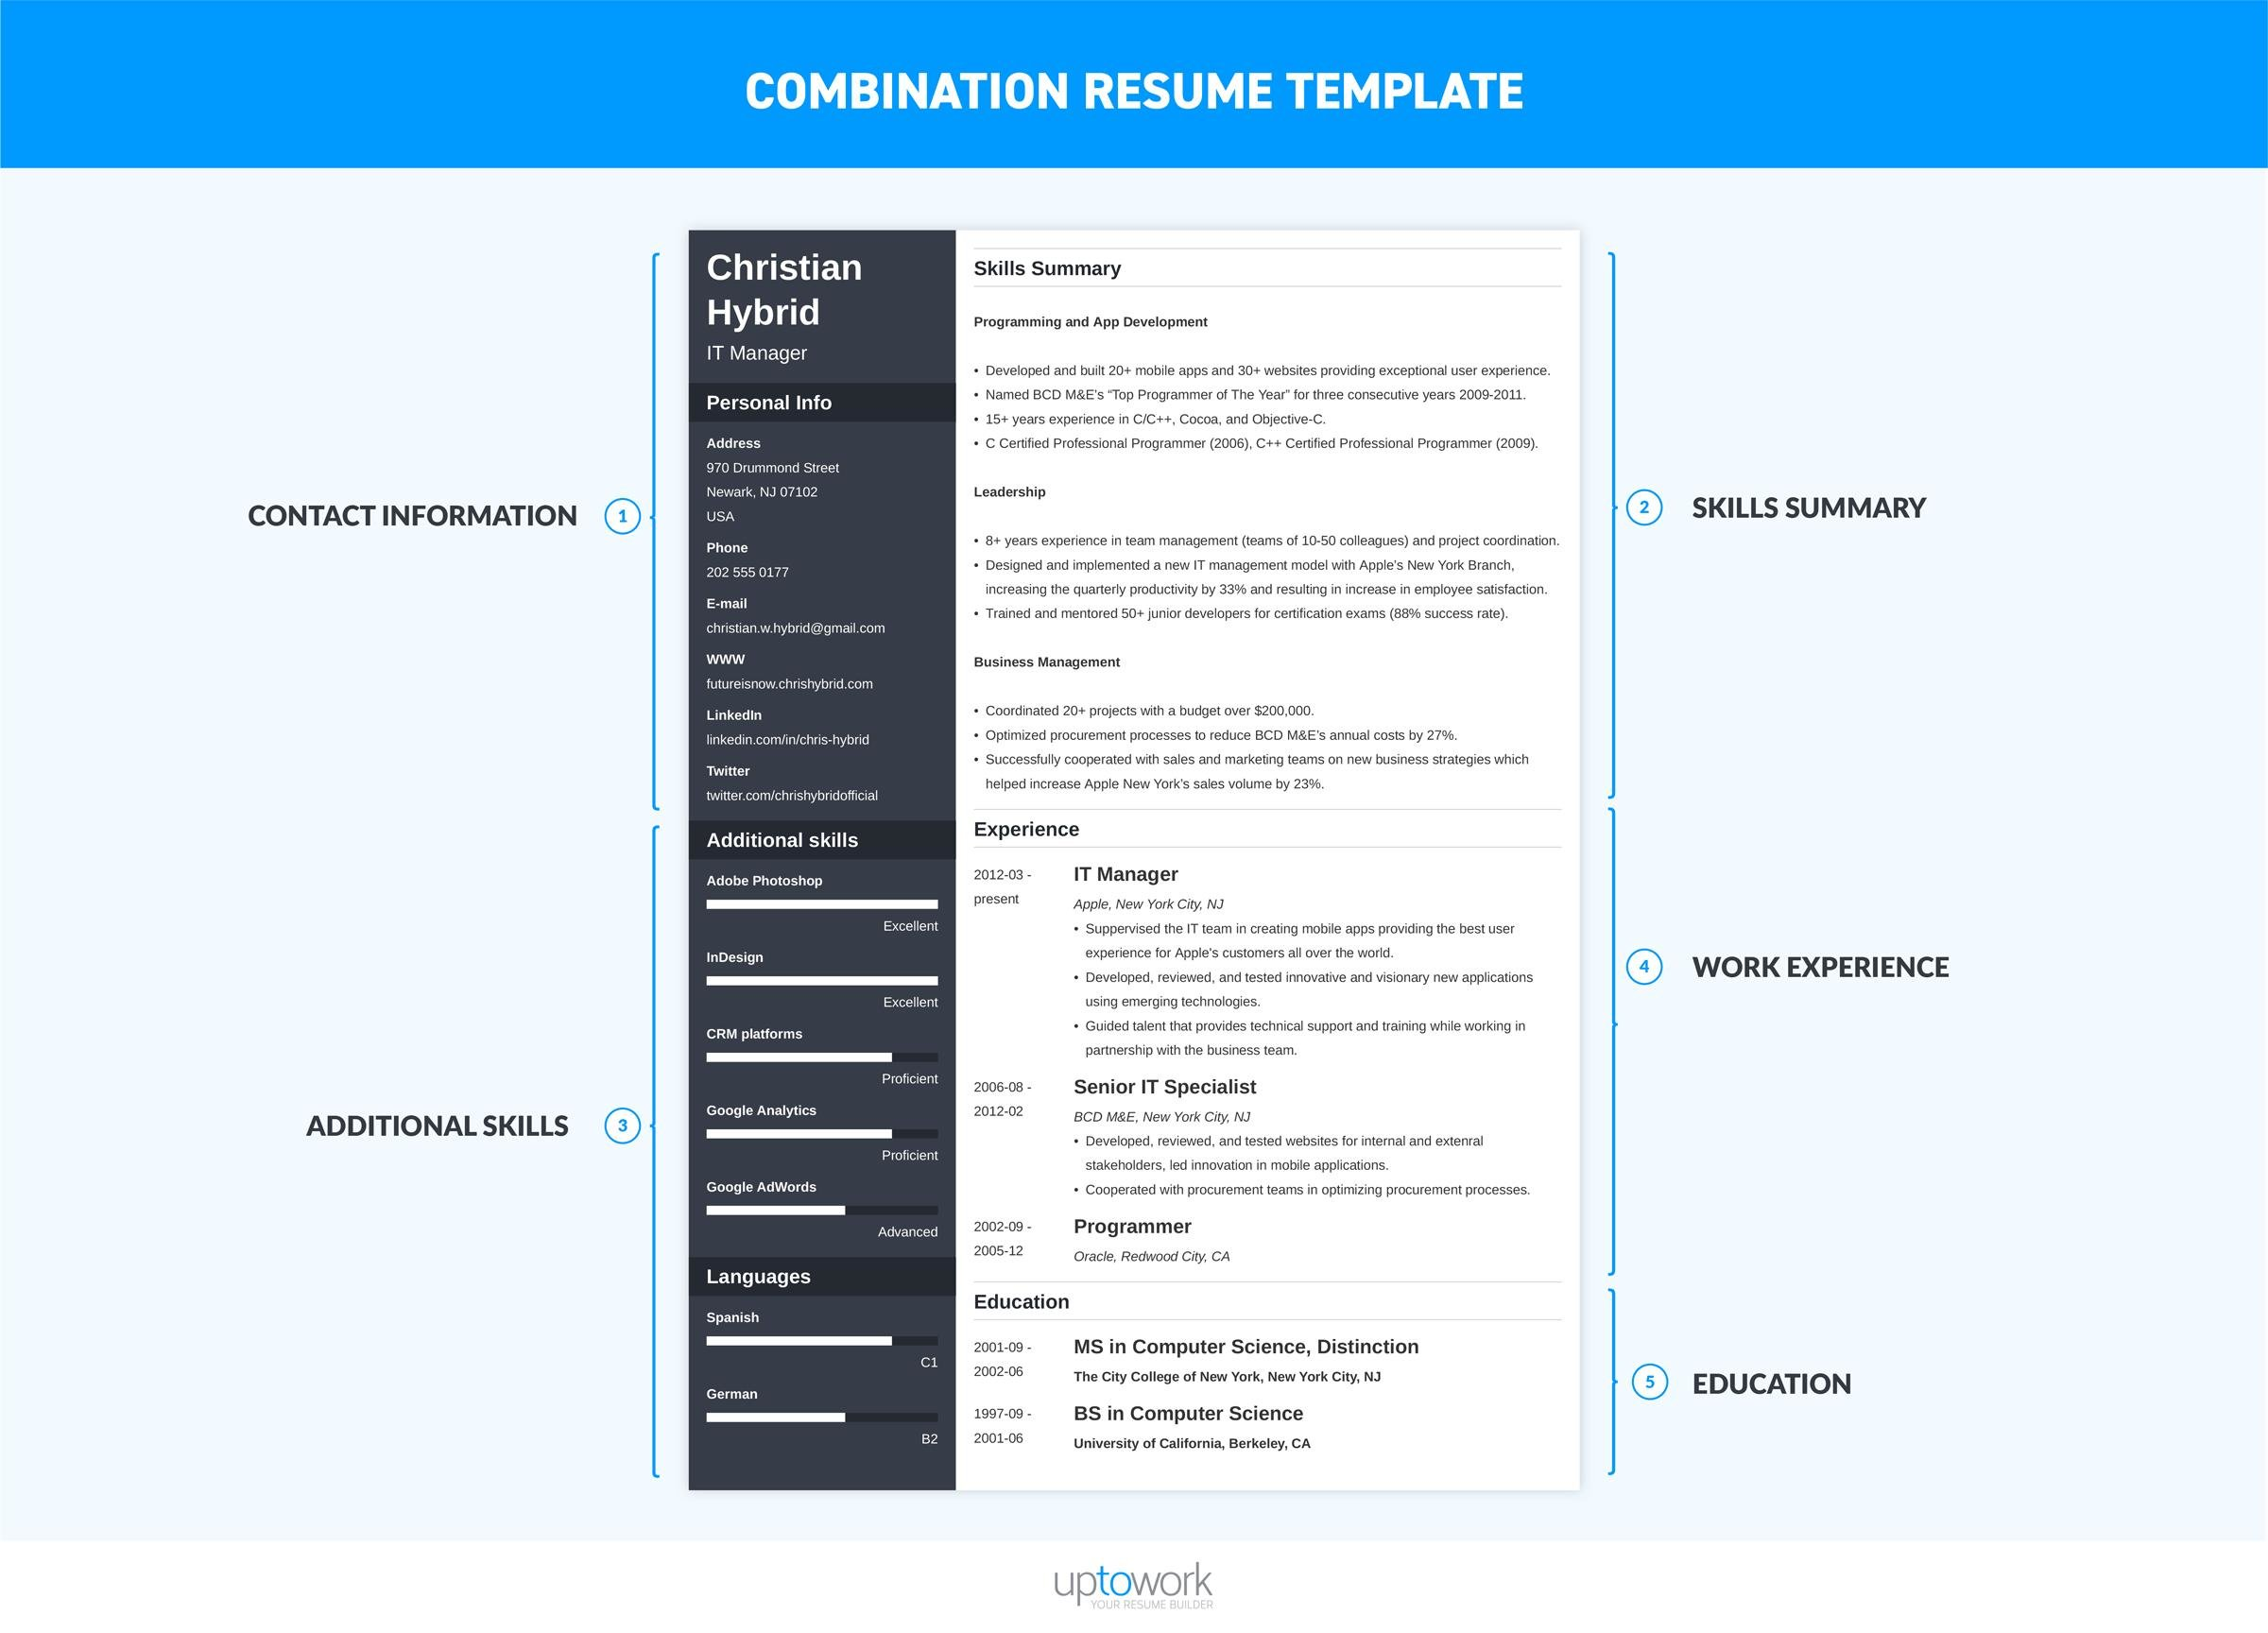 resume formats pick the best one in  steps (examples  templates) - combination resume format